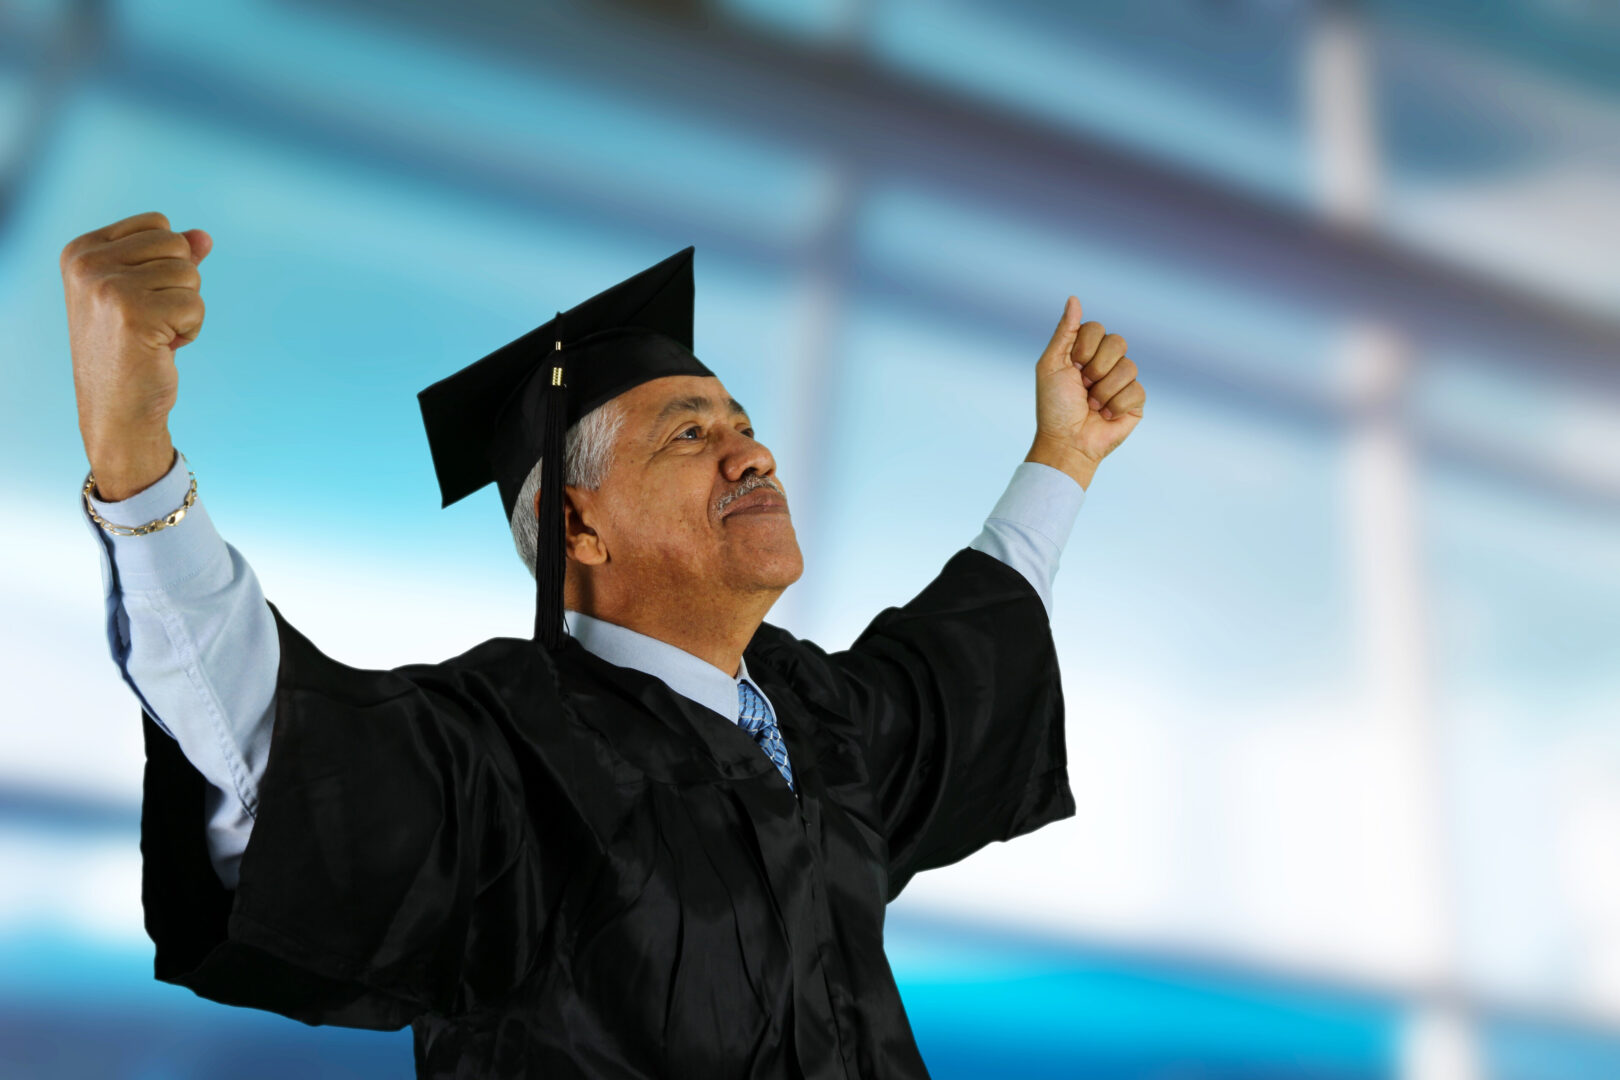 senior man in graduation robe shouting for joy with arms up in air